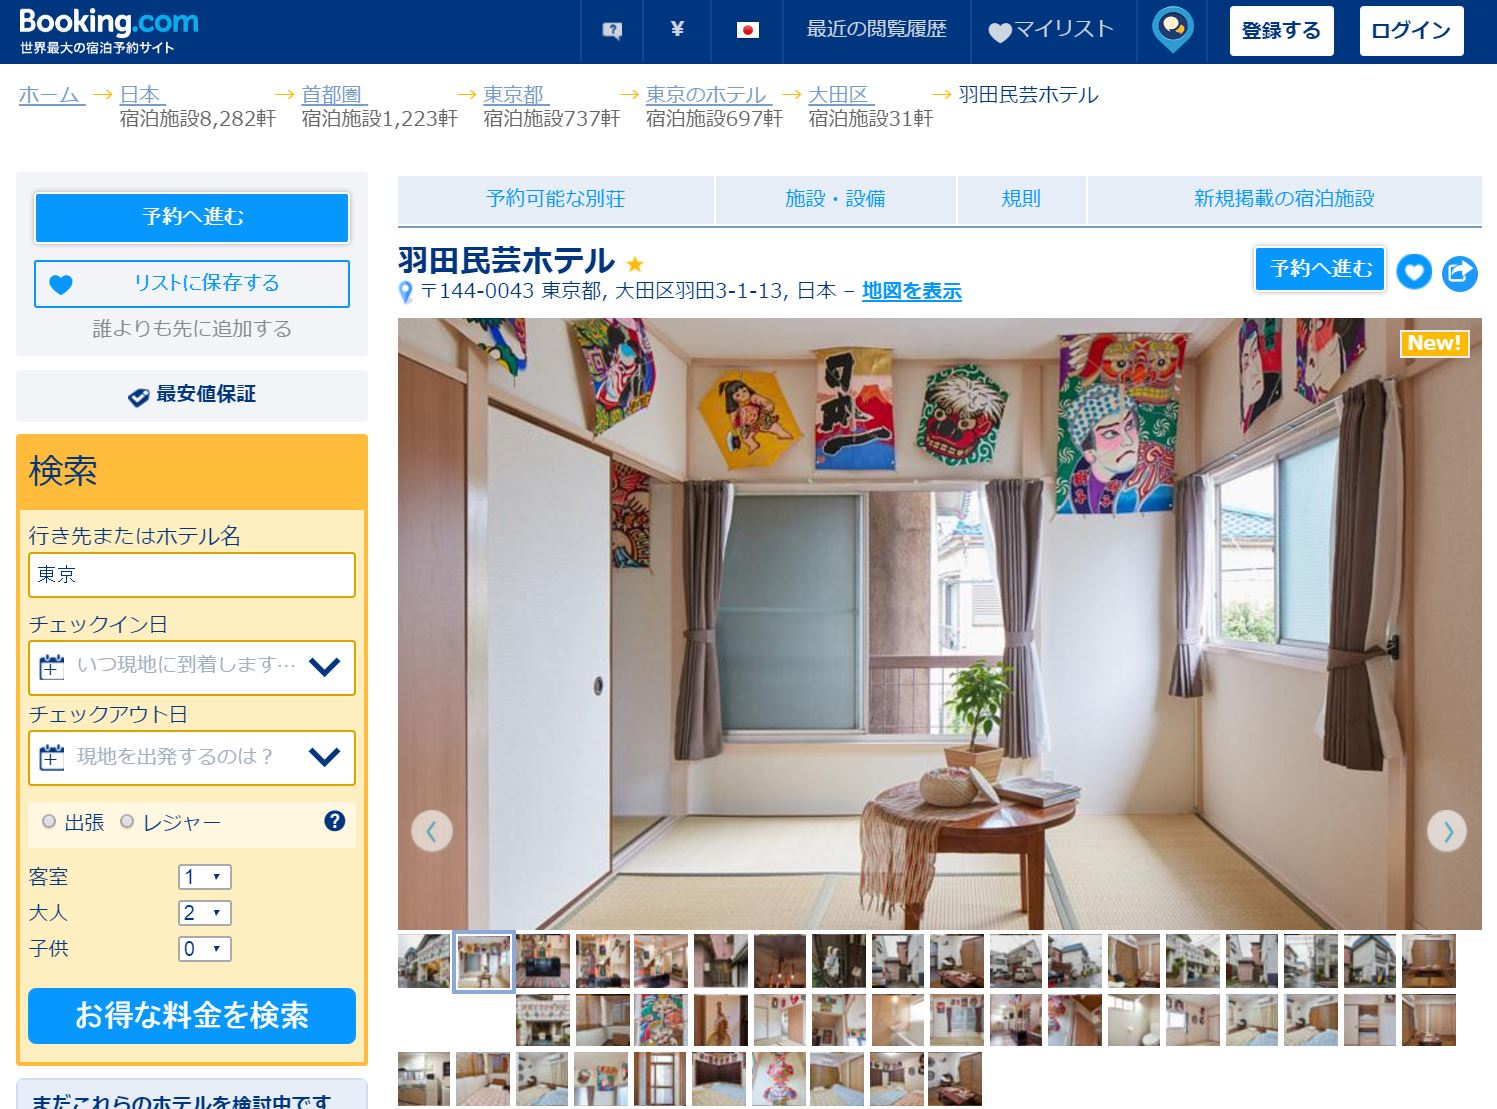 Booking.com begins listing licensed vacation rentals as its second house category